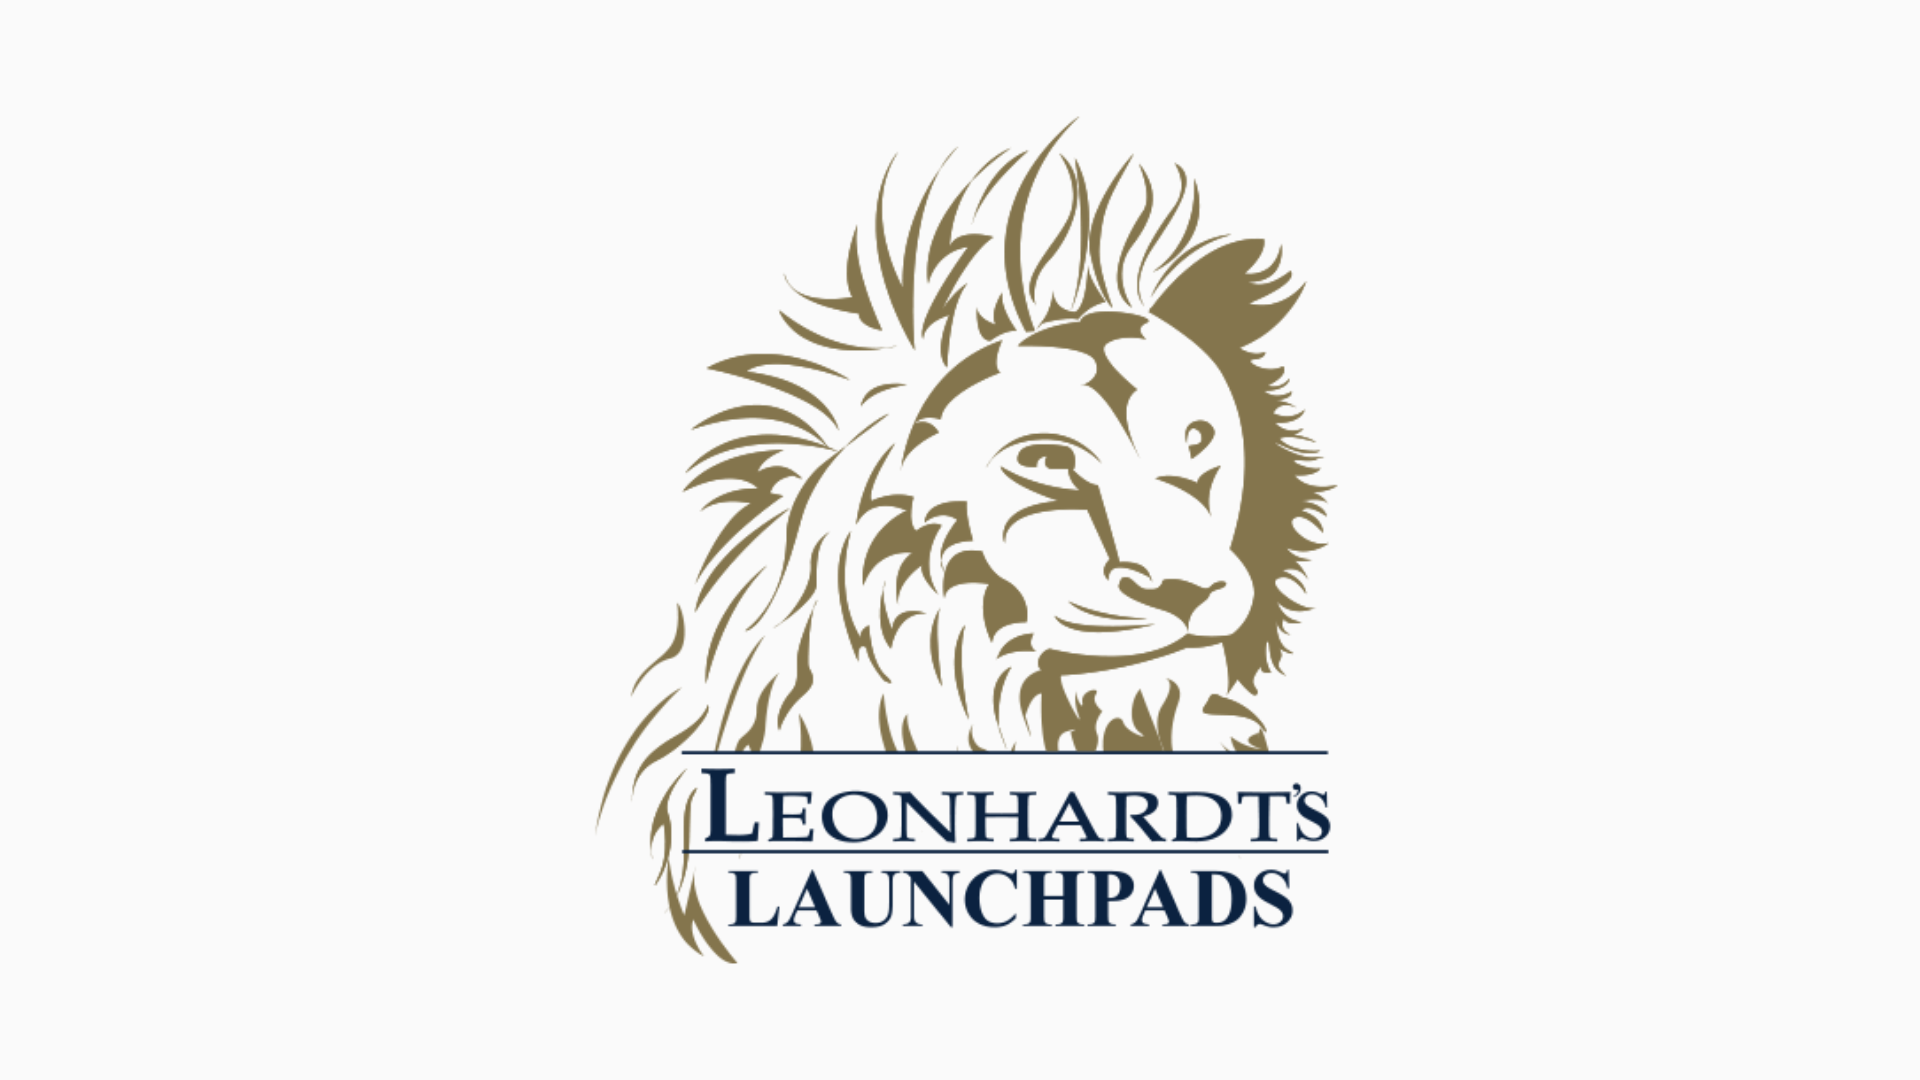 Leonhardt's Launchpads Completes Move to Irvine, California